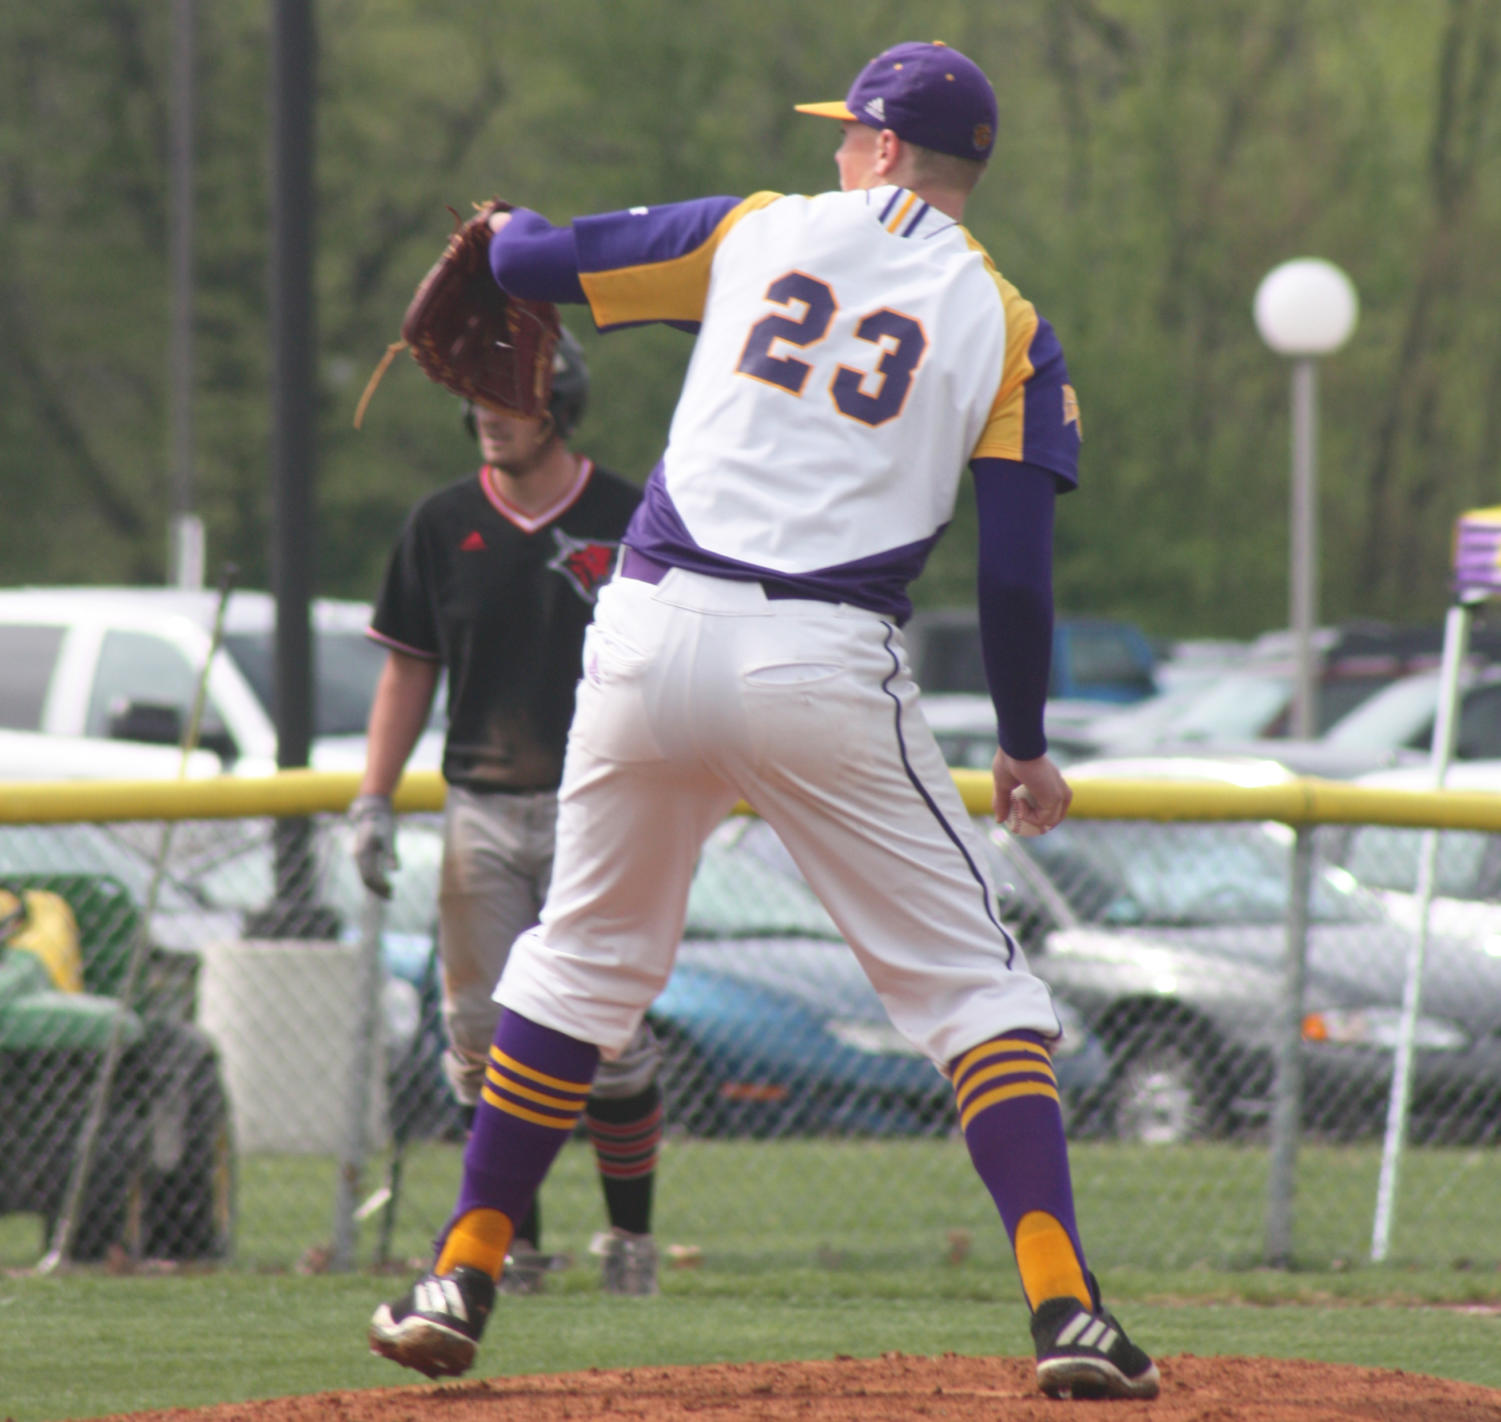 Ian Koch on the mound for his last season with the Leathernecks.